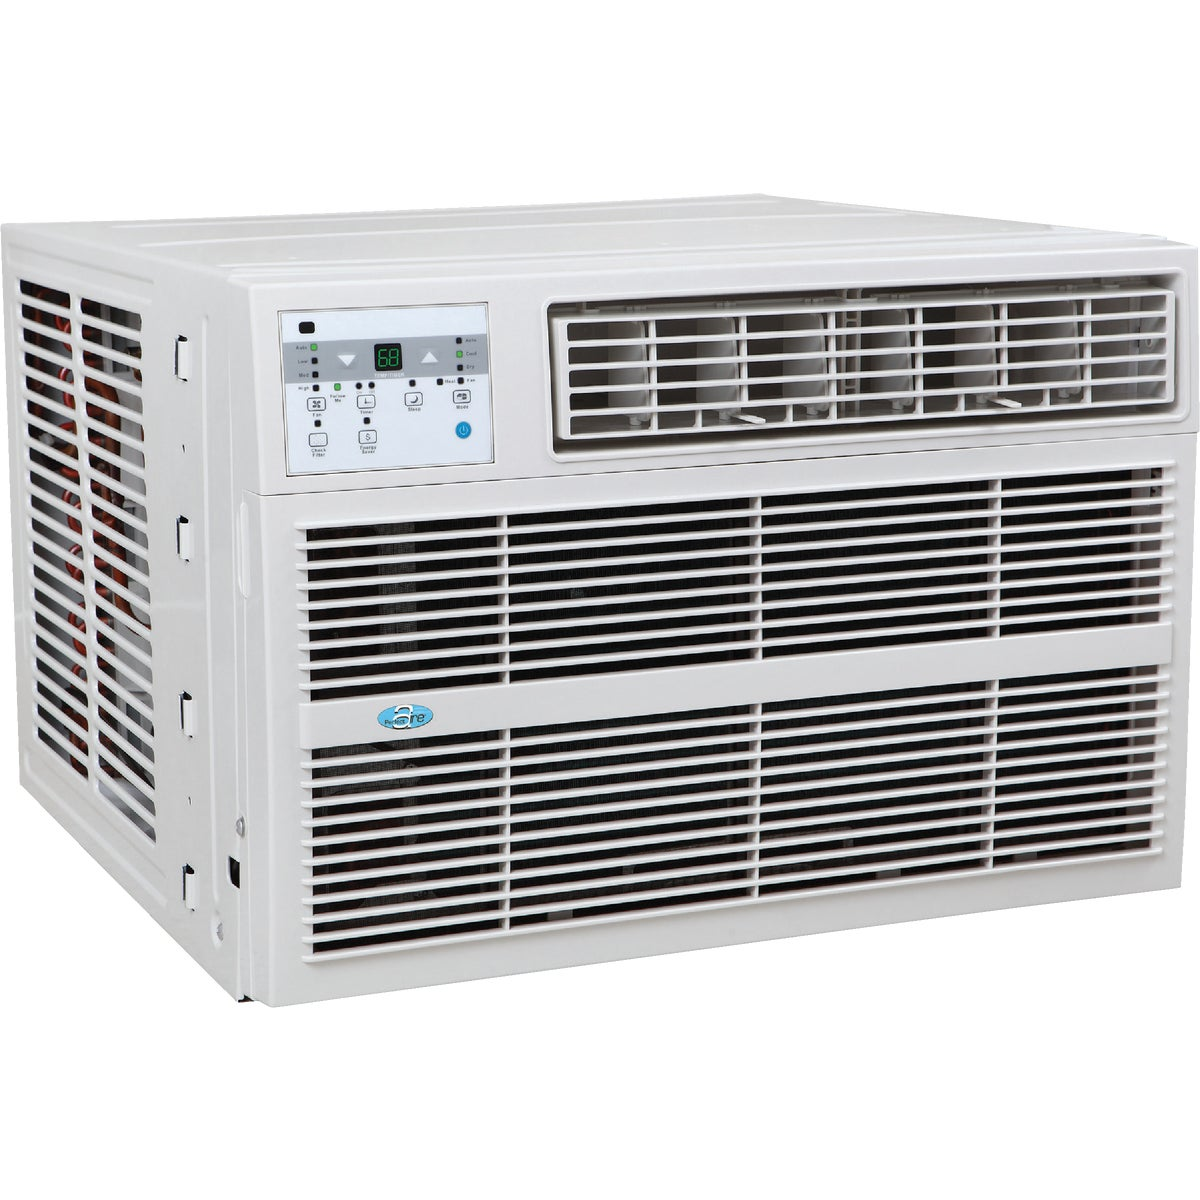 12 000 BTU HEAT/COOL A/C - PACH12000 by Perfect Aire Import